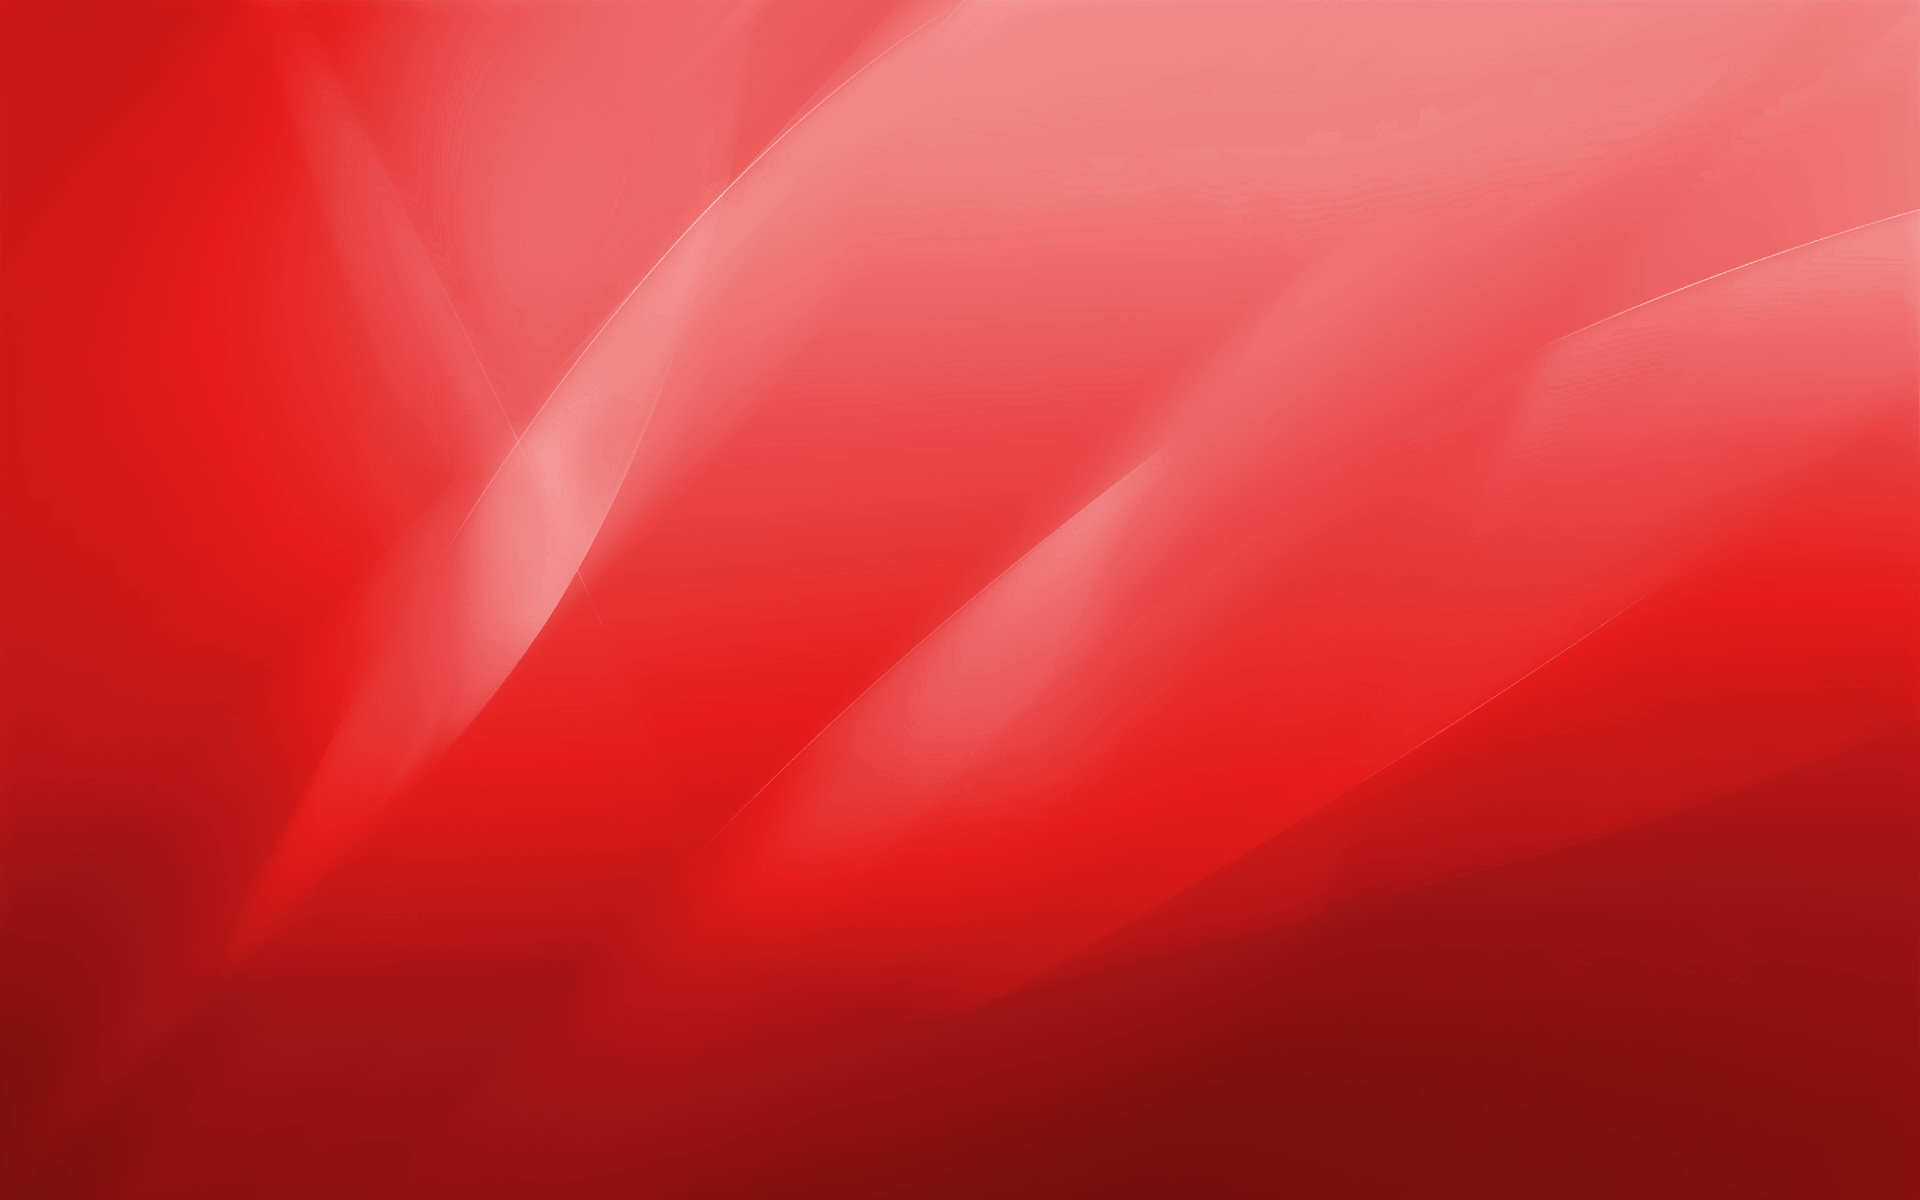 40 Crisp Red Wallpapers For Desktop Laptop and Tablet Devices 1920x1200